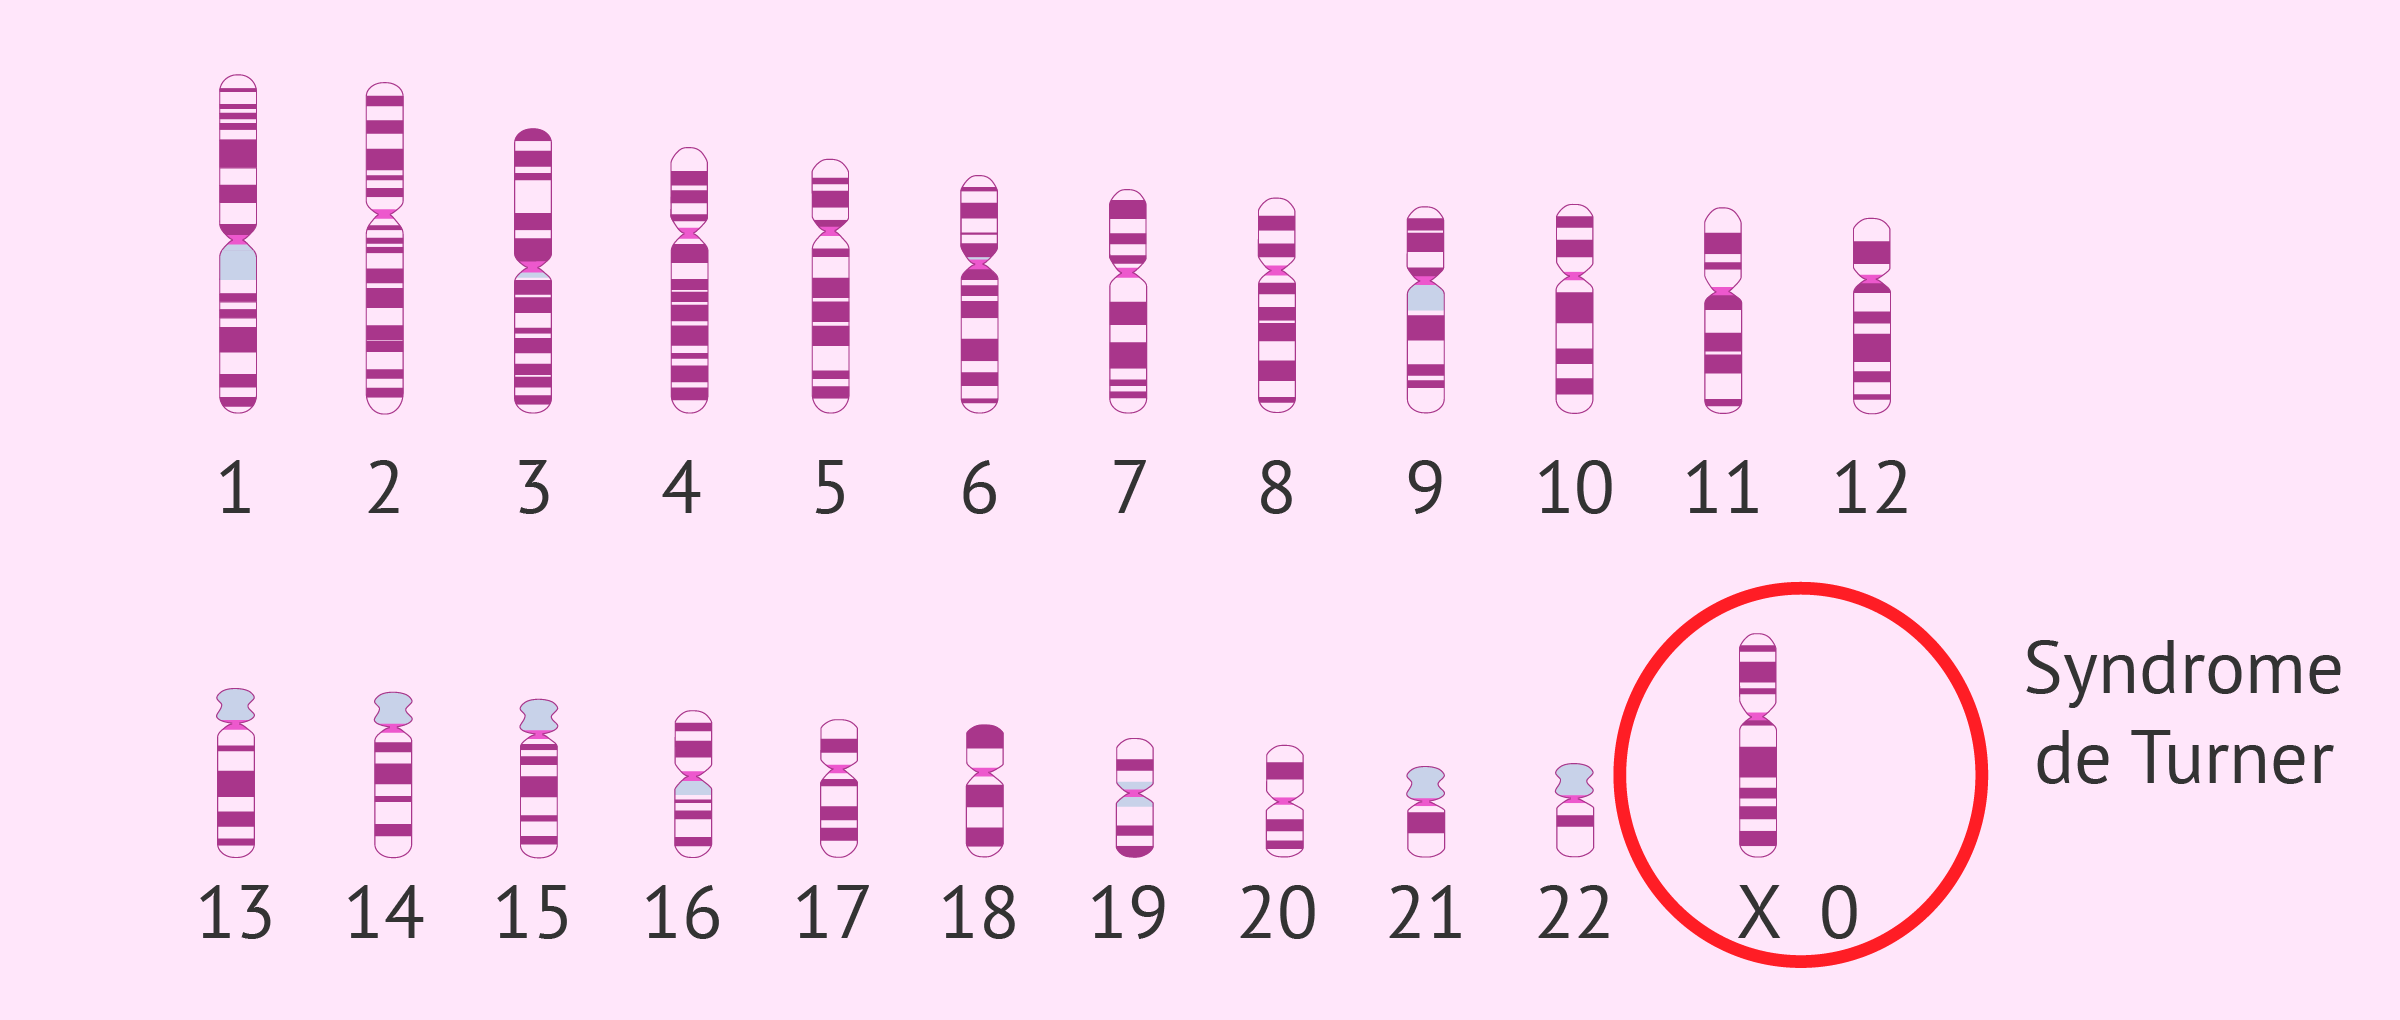 Caryotype du Syndrome de Turner